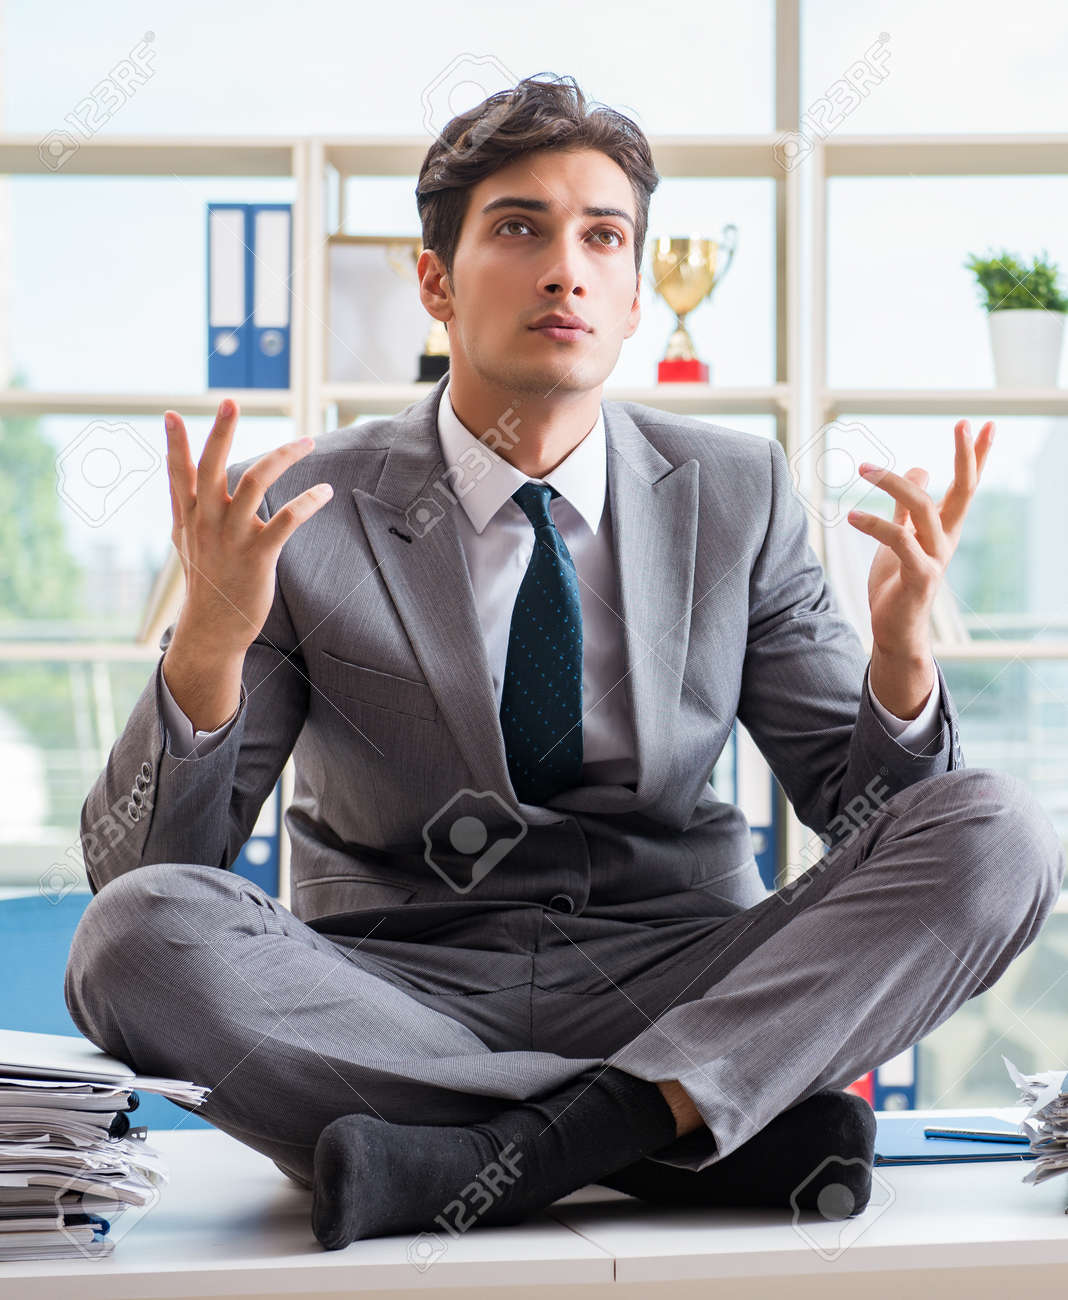 Businessman sitting on top of desk in office - 127012466